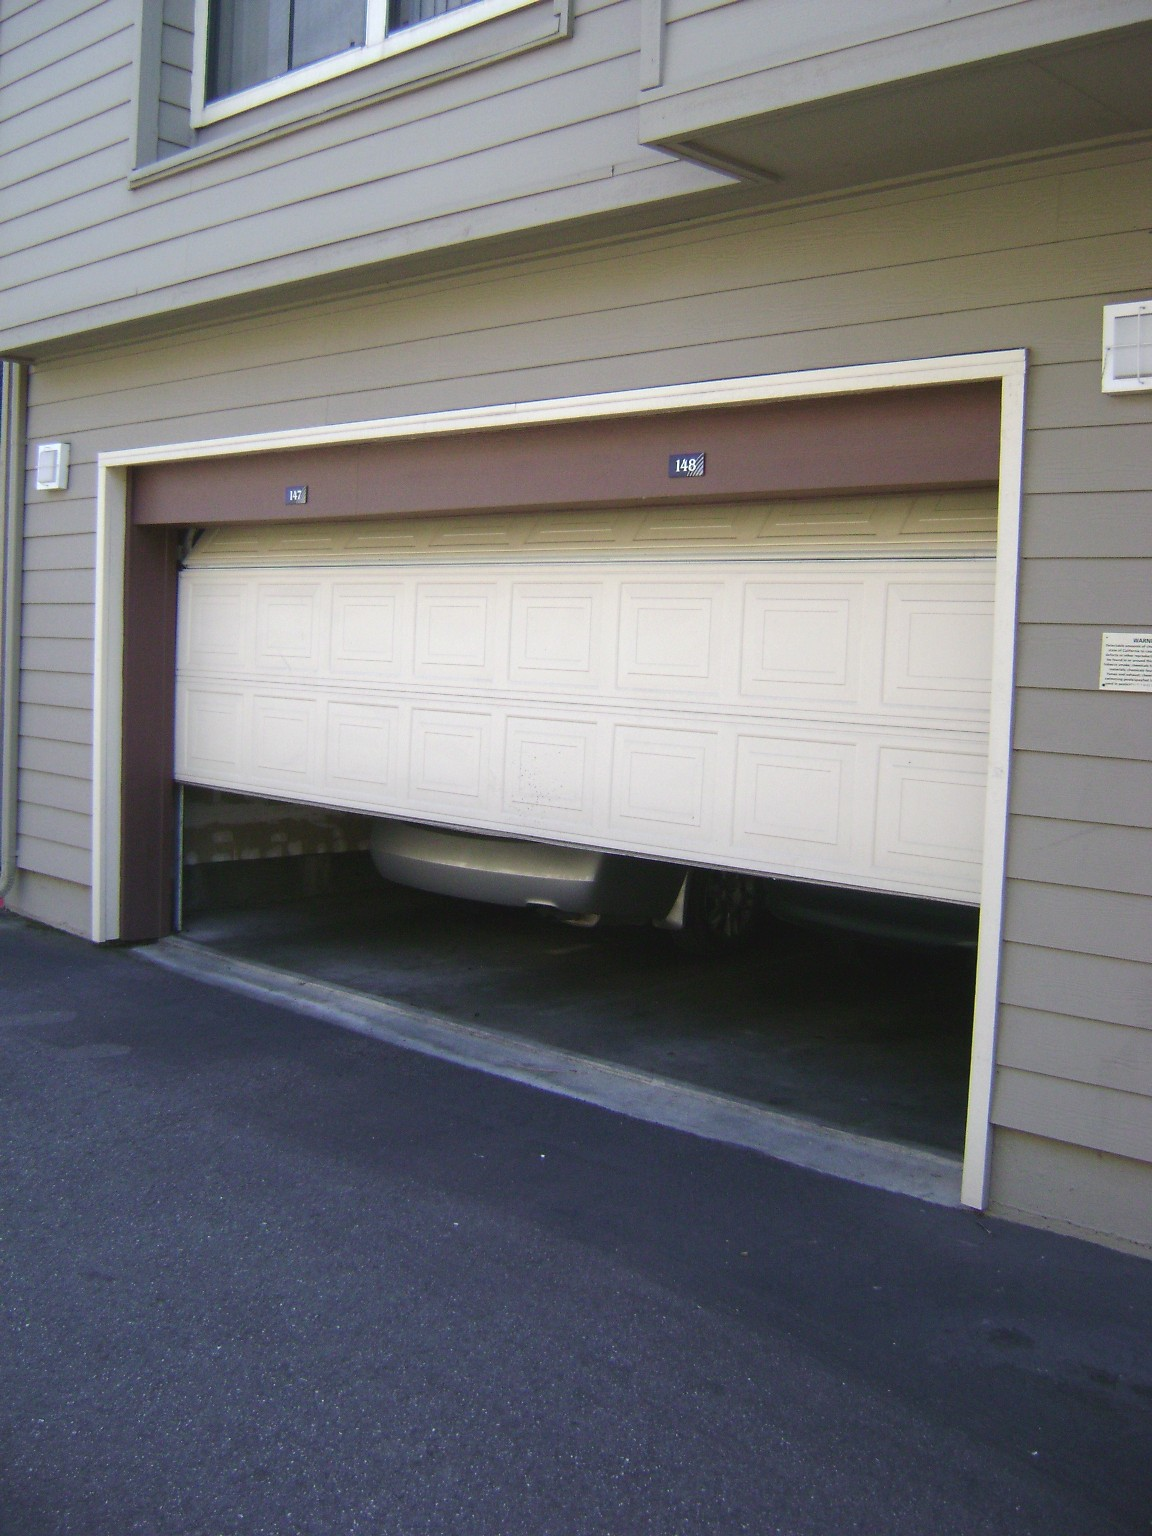 Minimum height of garage door - Minimum Height Of Garage Door 43